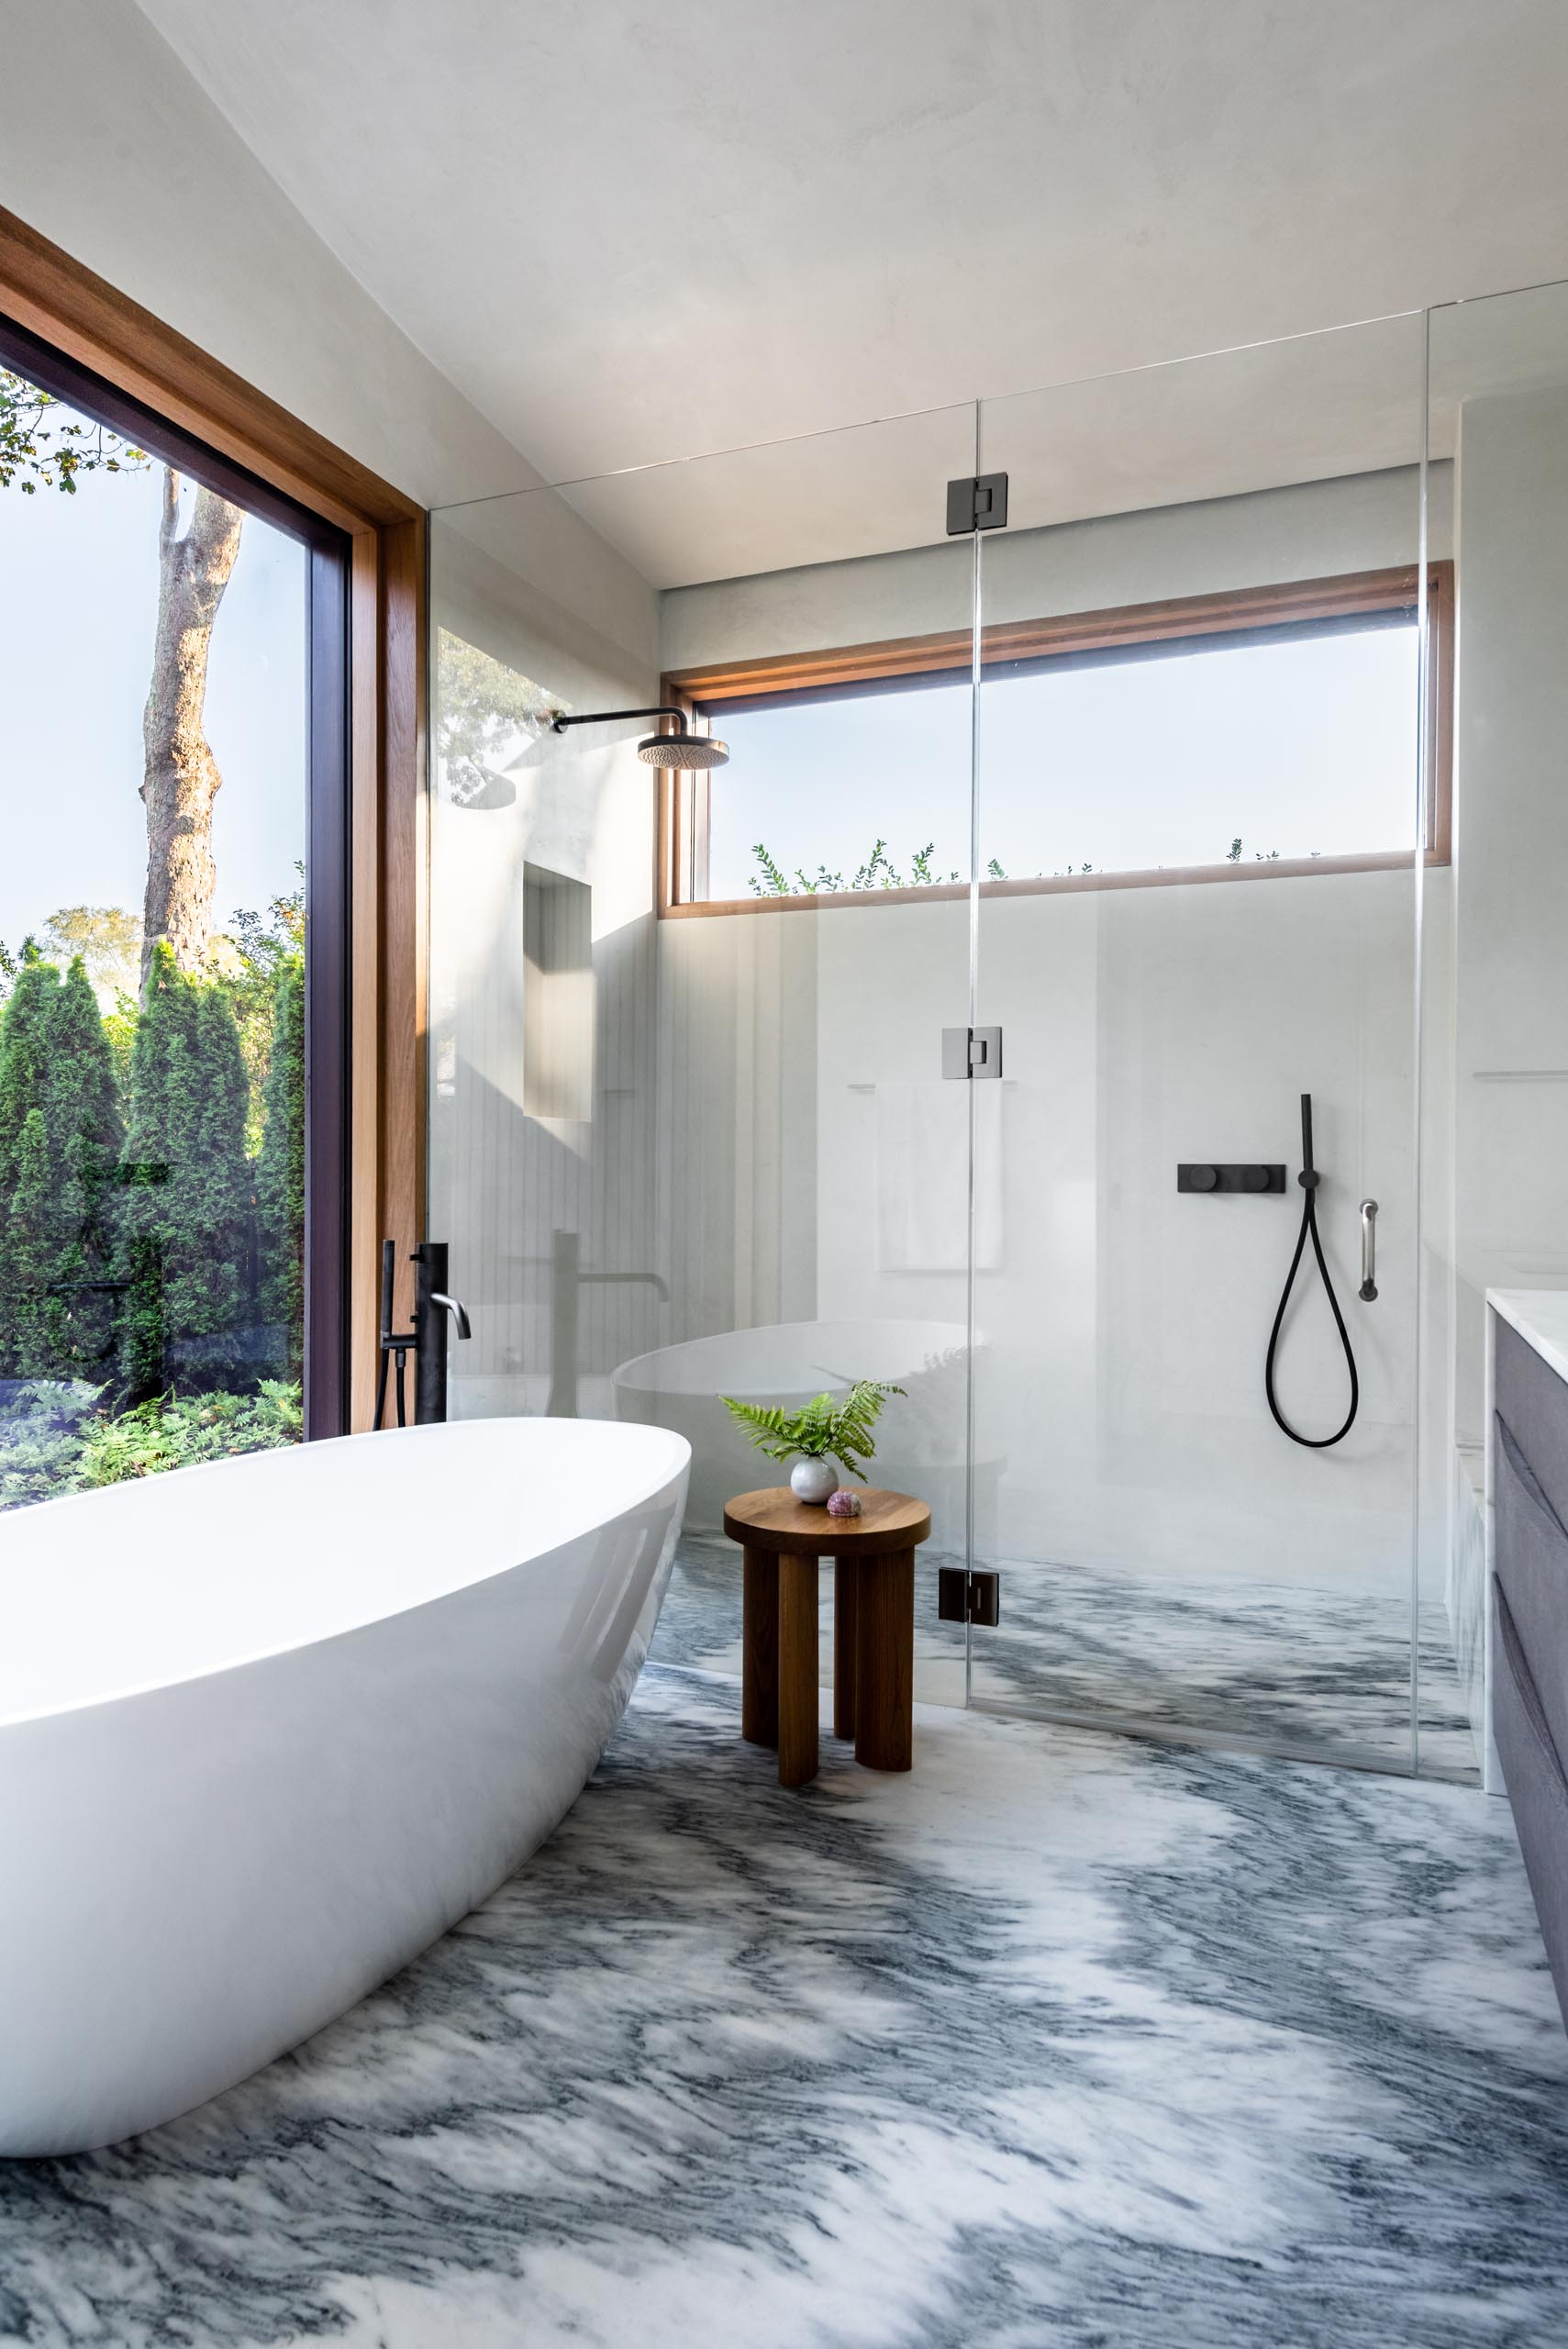 In this modern bathroom, an eye-catching floor complements the white freestanding bathtub and black bathroom hardware.